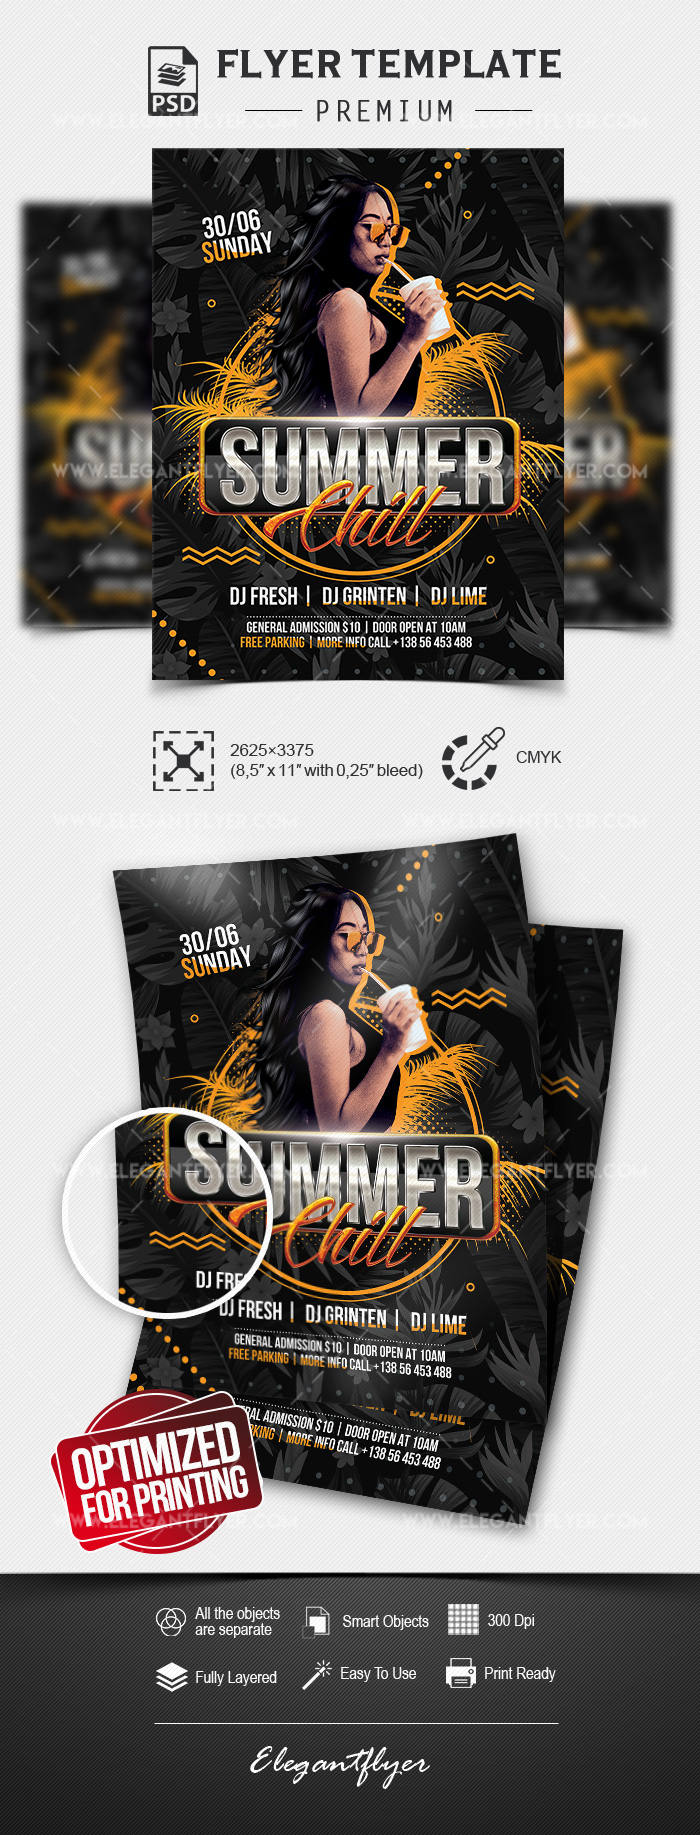 Summer Chill – Premium Flyer Template in PSD